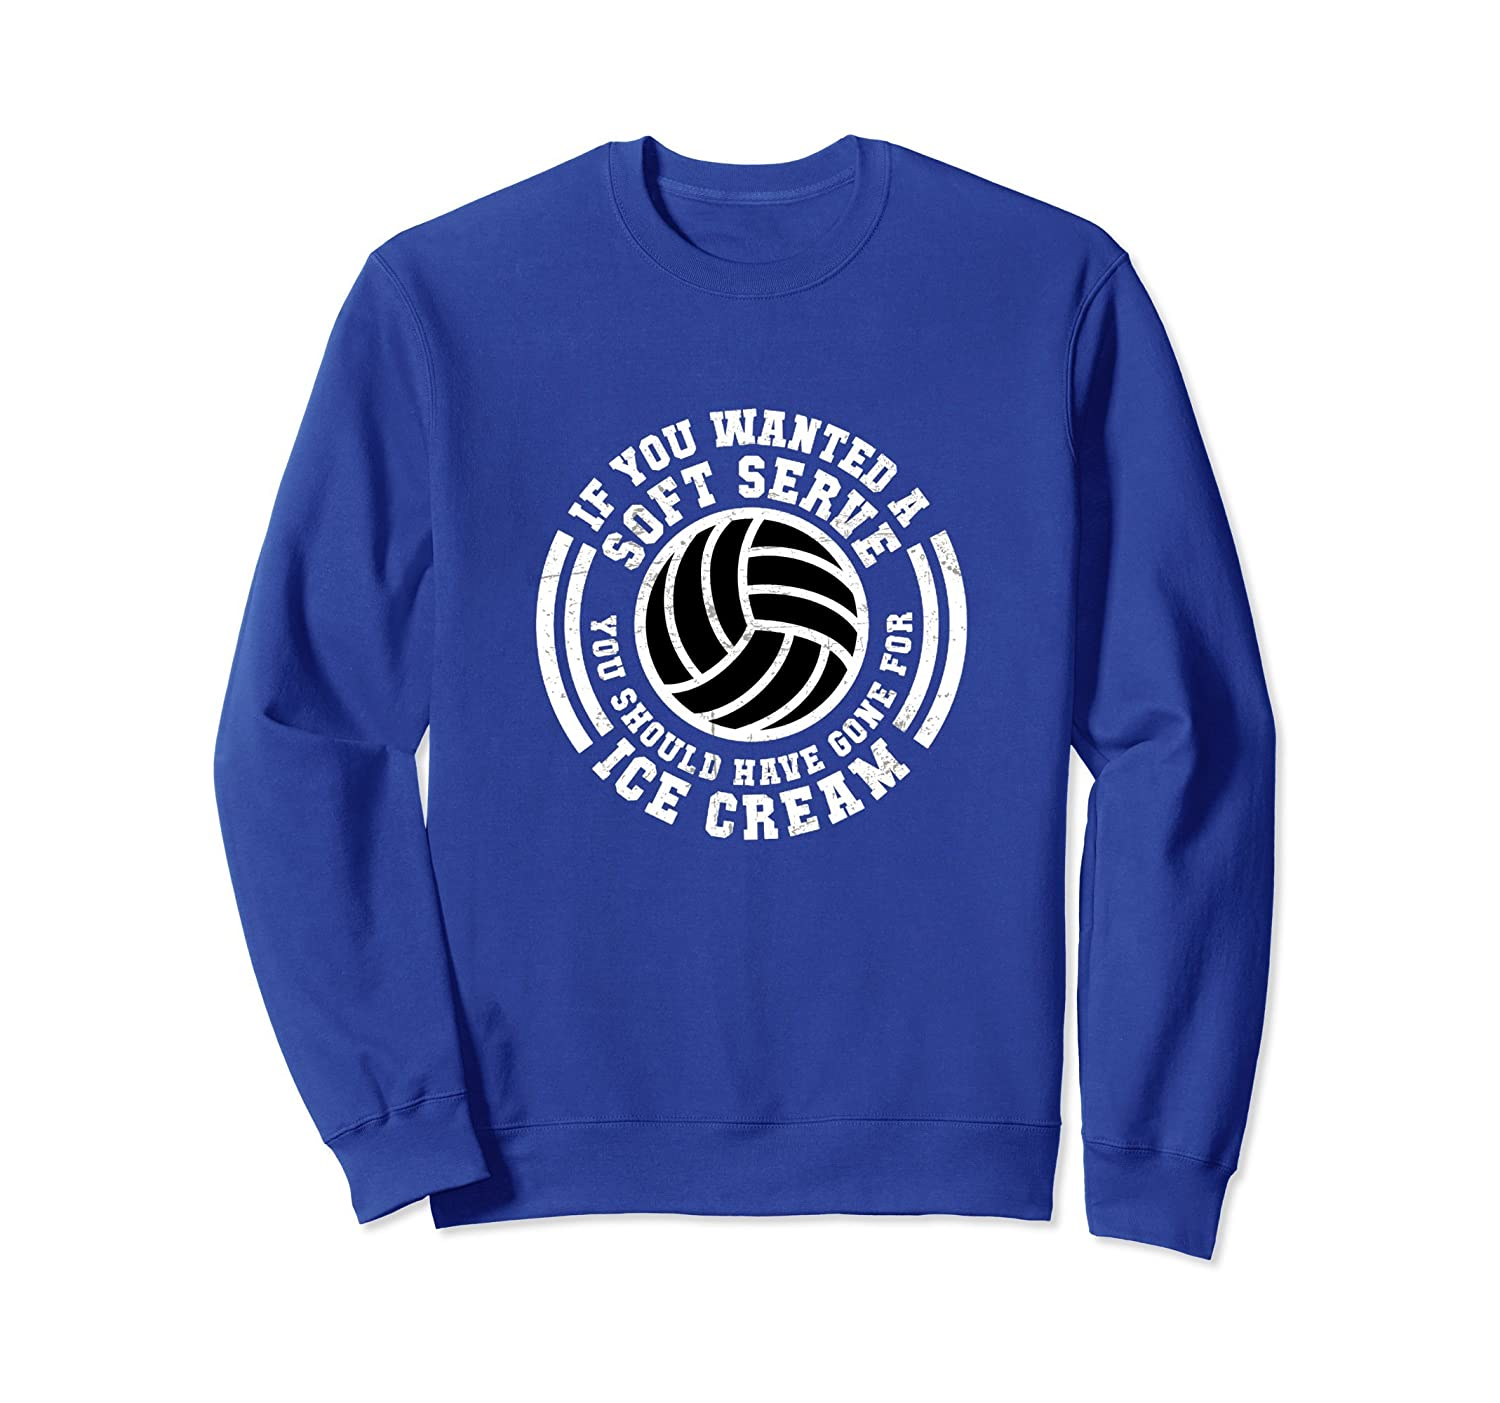 Volleyball Sweatshirt-Wanted Soft Serve Ice Cream Pullover-TH